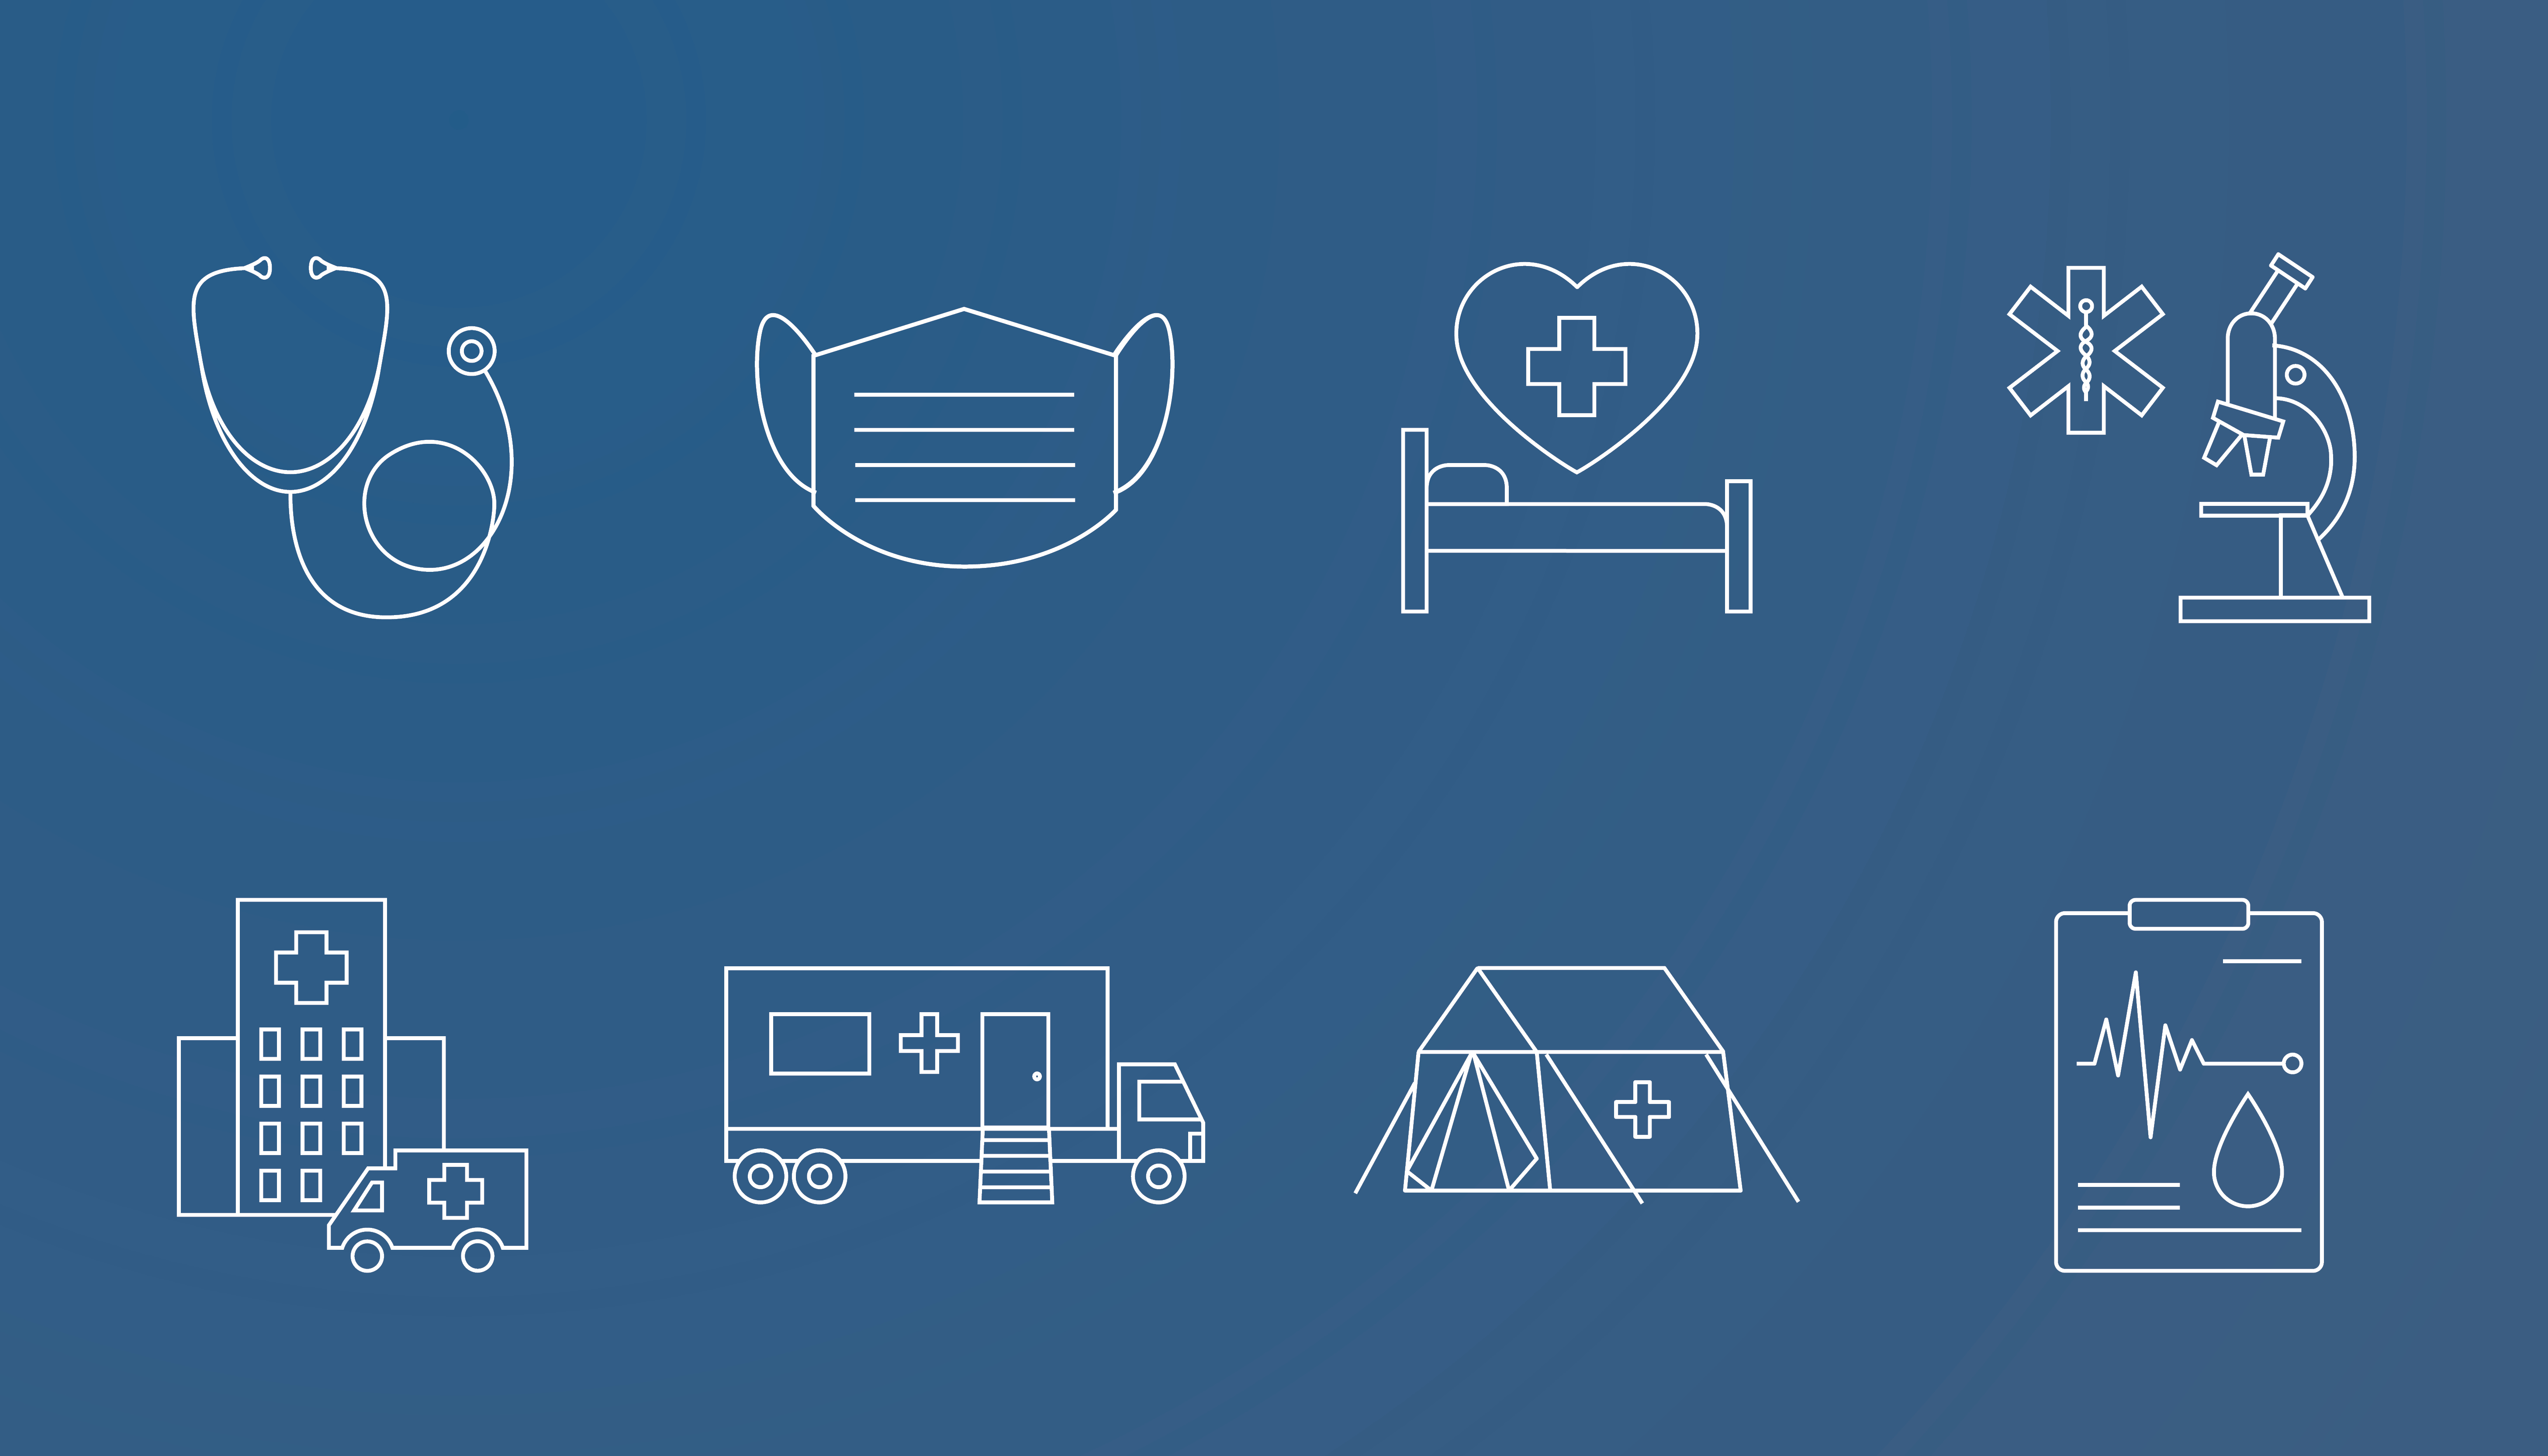 A variety of healthcare and construction-themed icons on a blue background